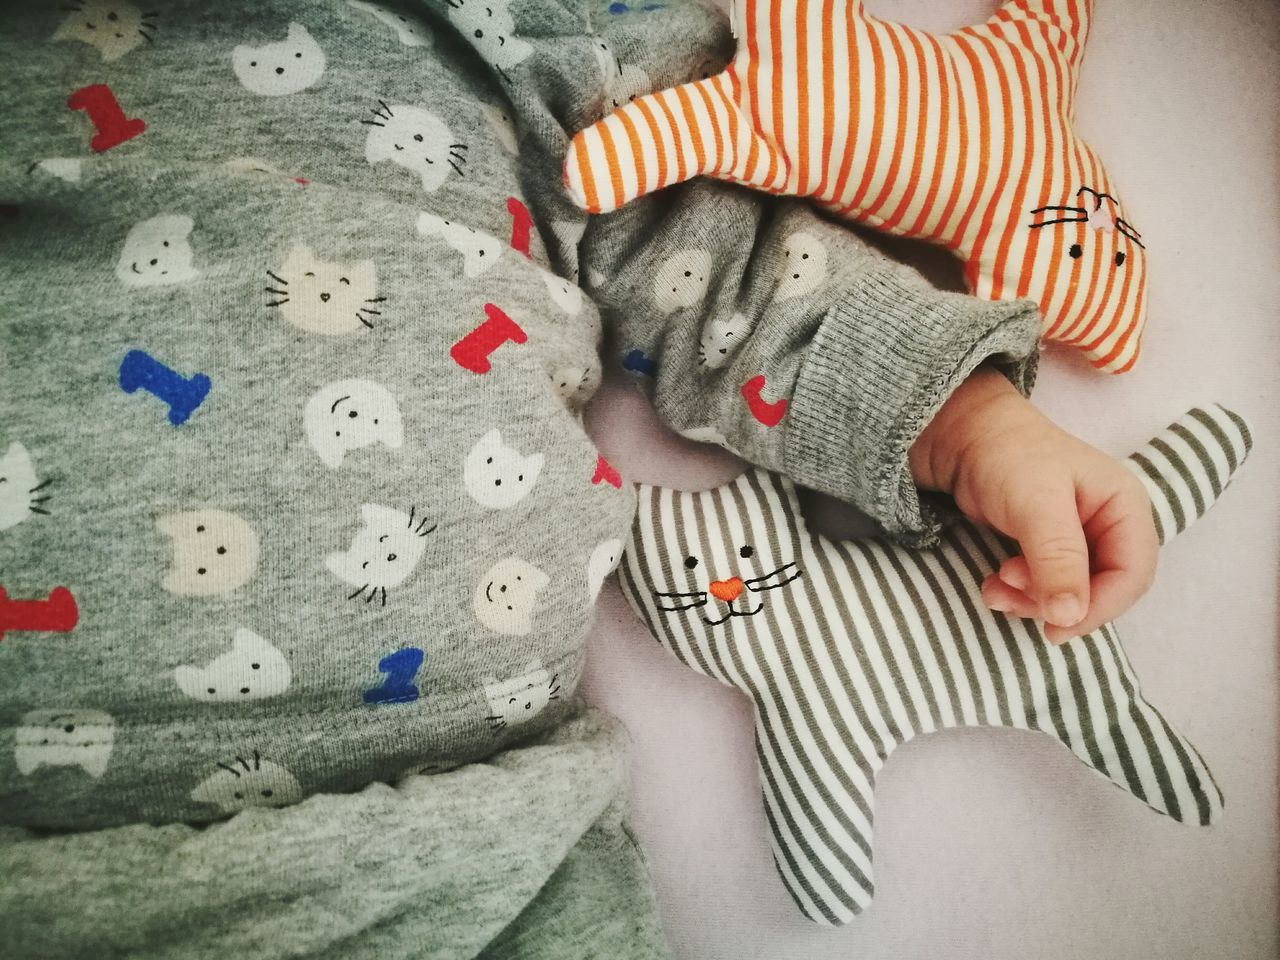 One Person Indoors  People Adults OnonlyOnlyCats Human Hand Human Heritage Babyhood Baby Baby Clothing Baby Hand Newborn Innocence Cat Cats Catoftheday Motherhood Childhood One Girl Only Innocence Of Youth Animal Themes Close-up Human Body Part Beautifully Organized My Year My View